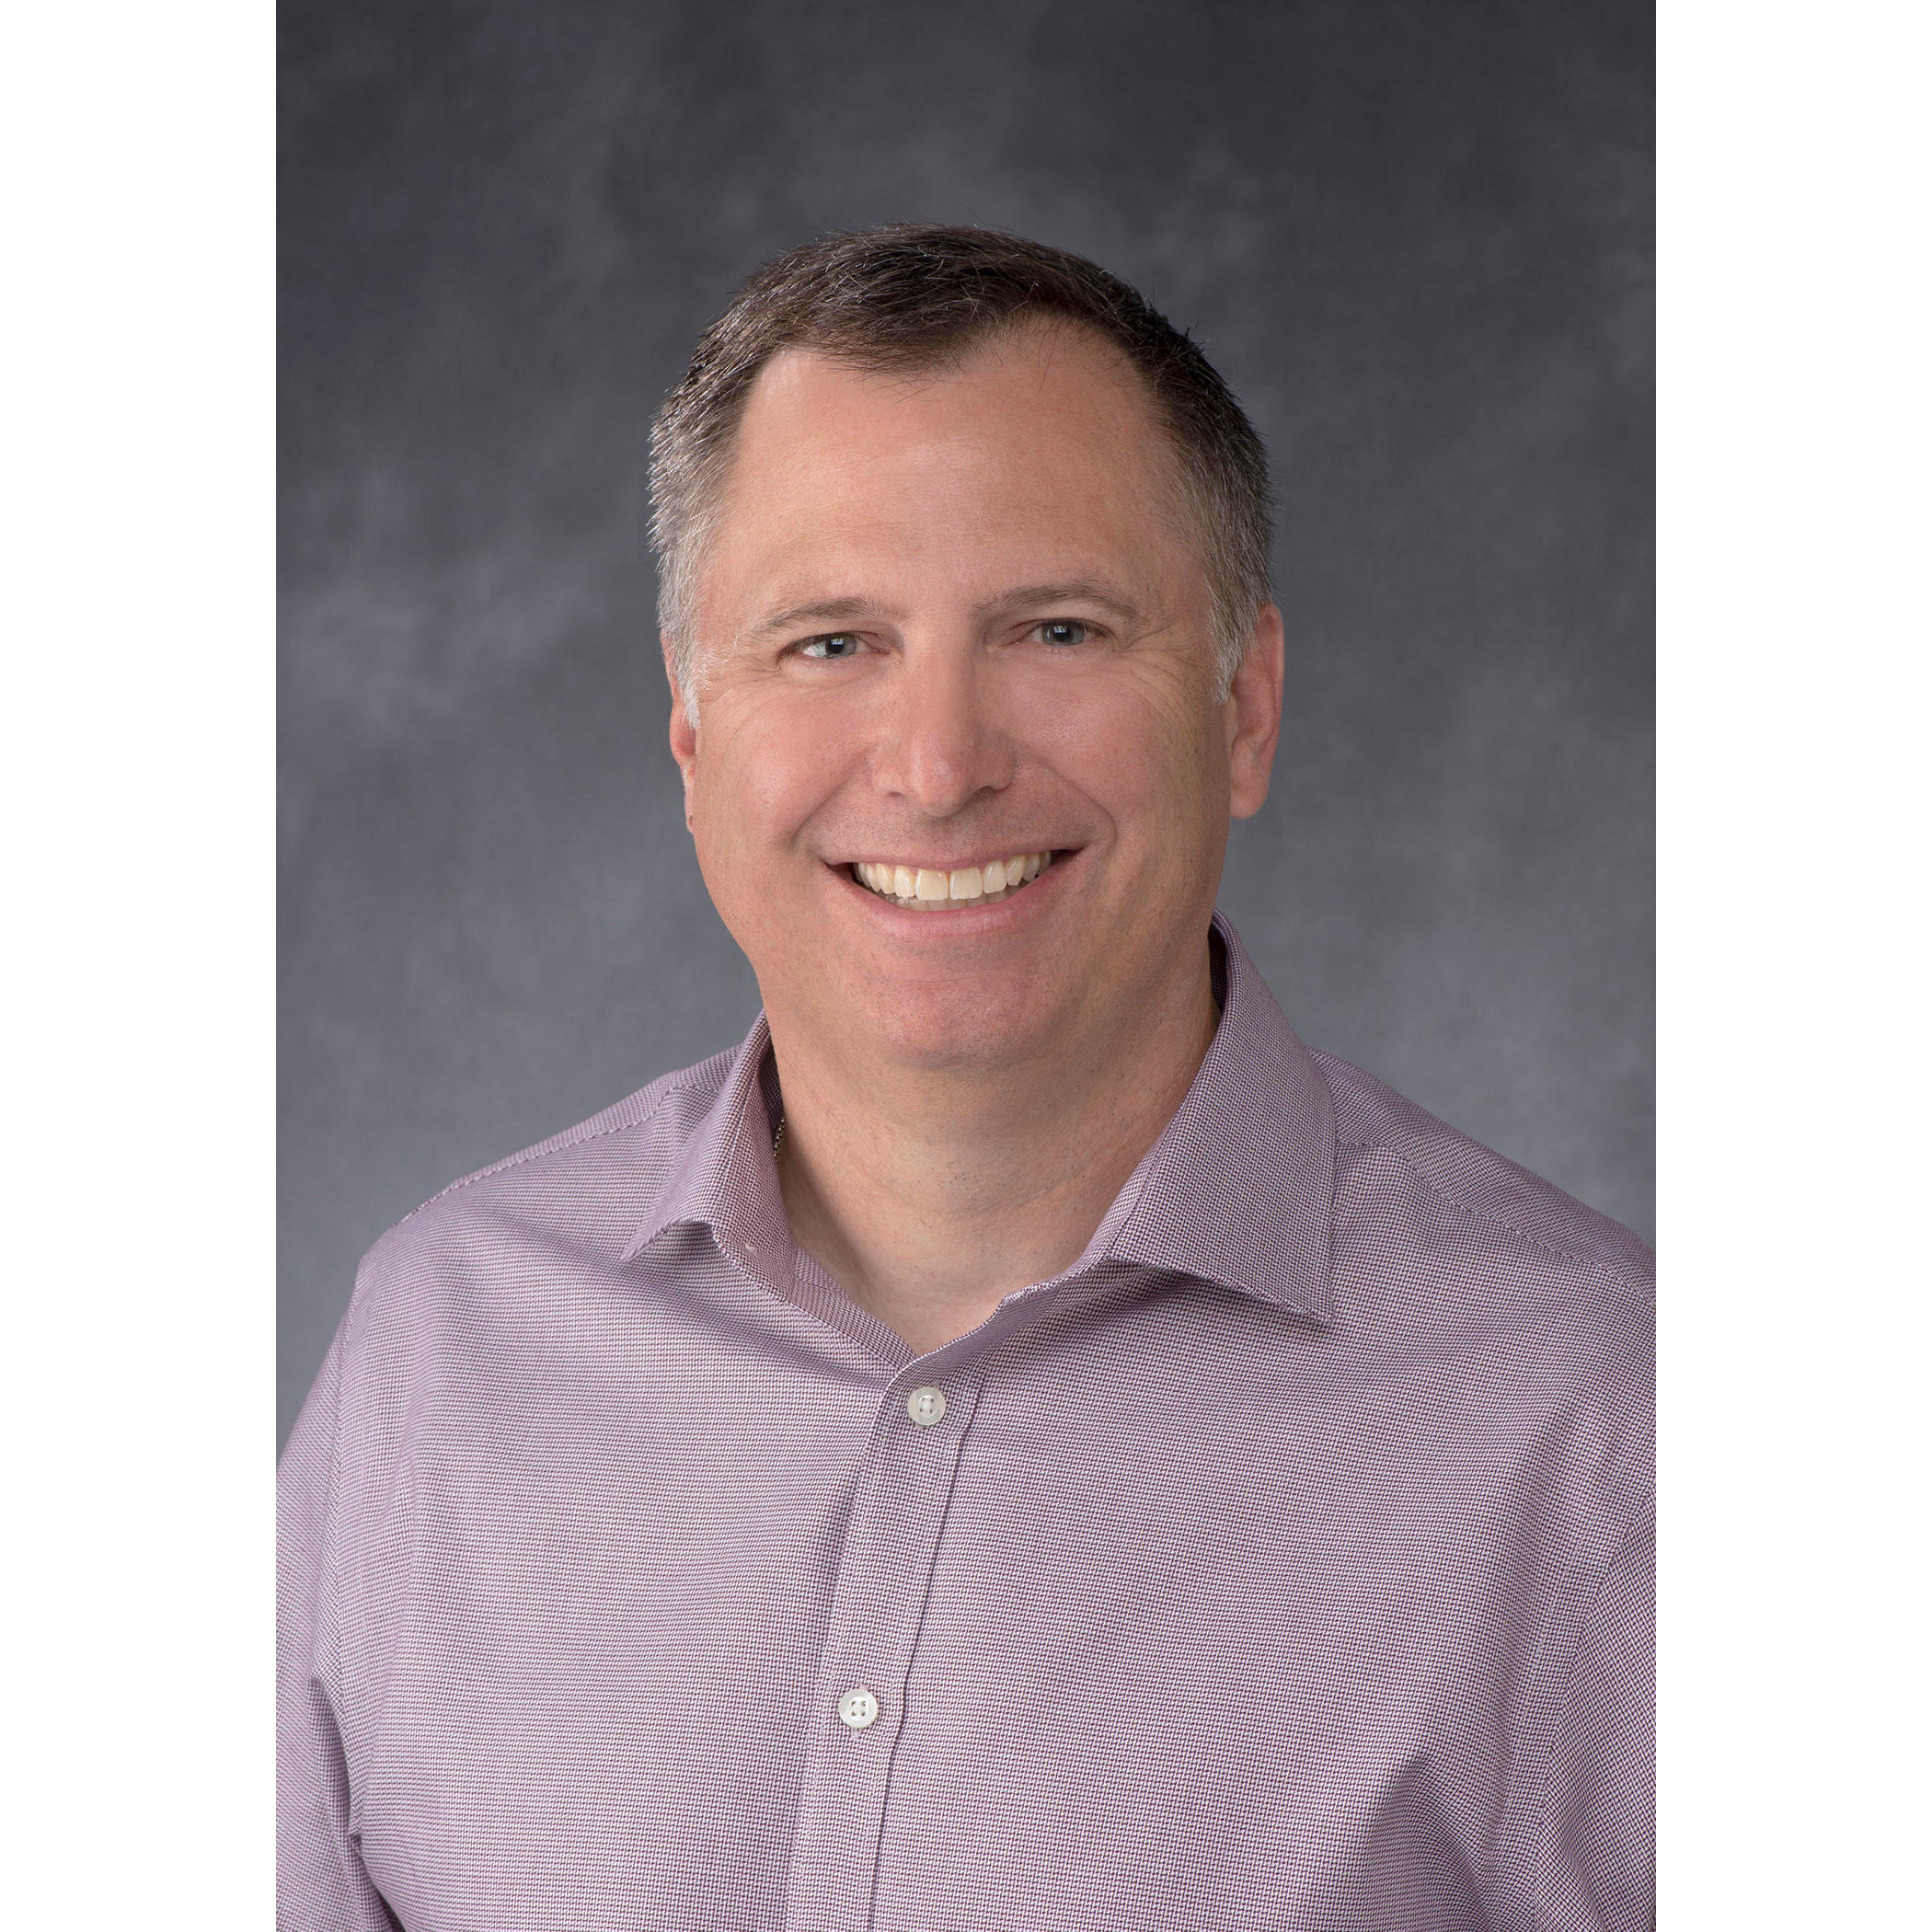 Brent Walters - Scottsdale, AZ - General or Family Practice Physicians